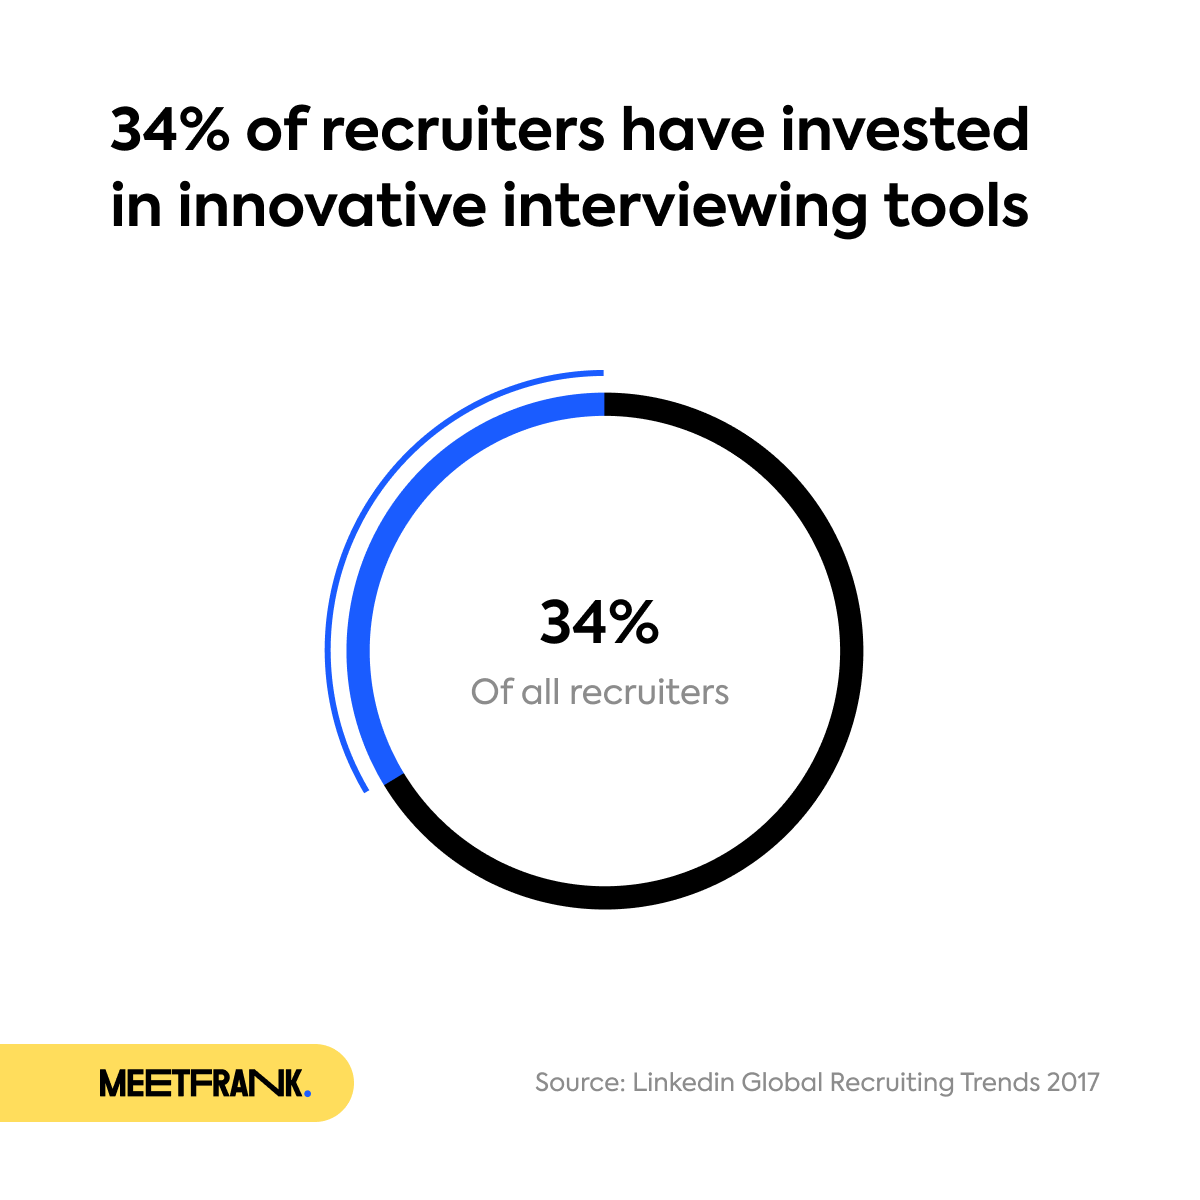 graph about 34% of recruitors investing in innovative interviewing tools